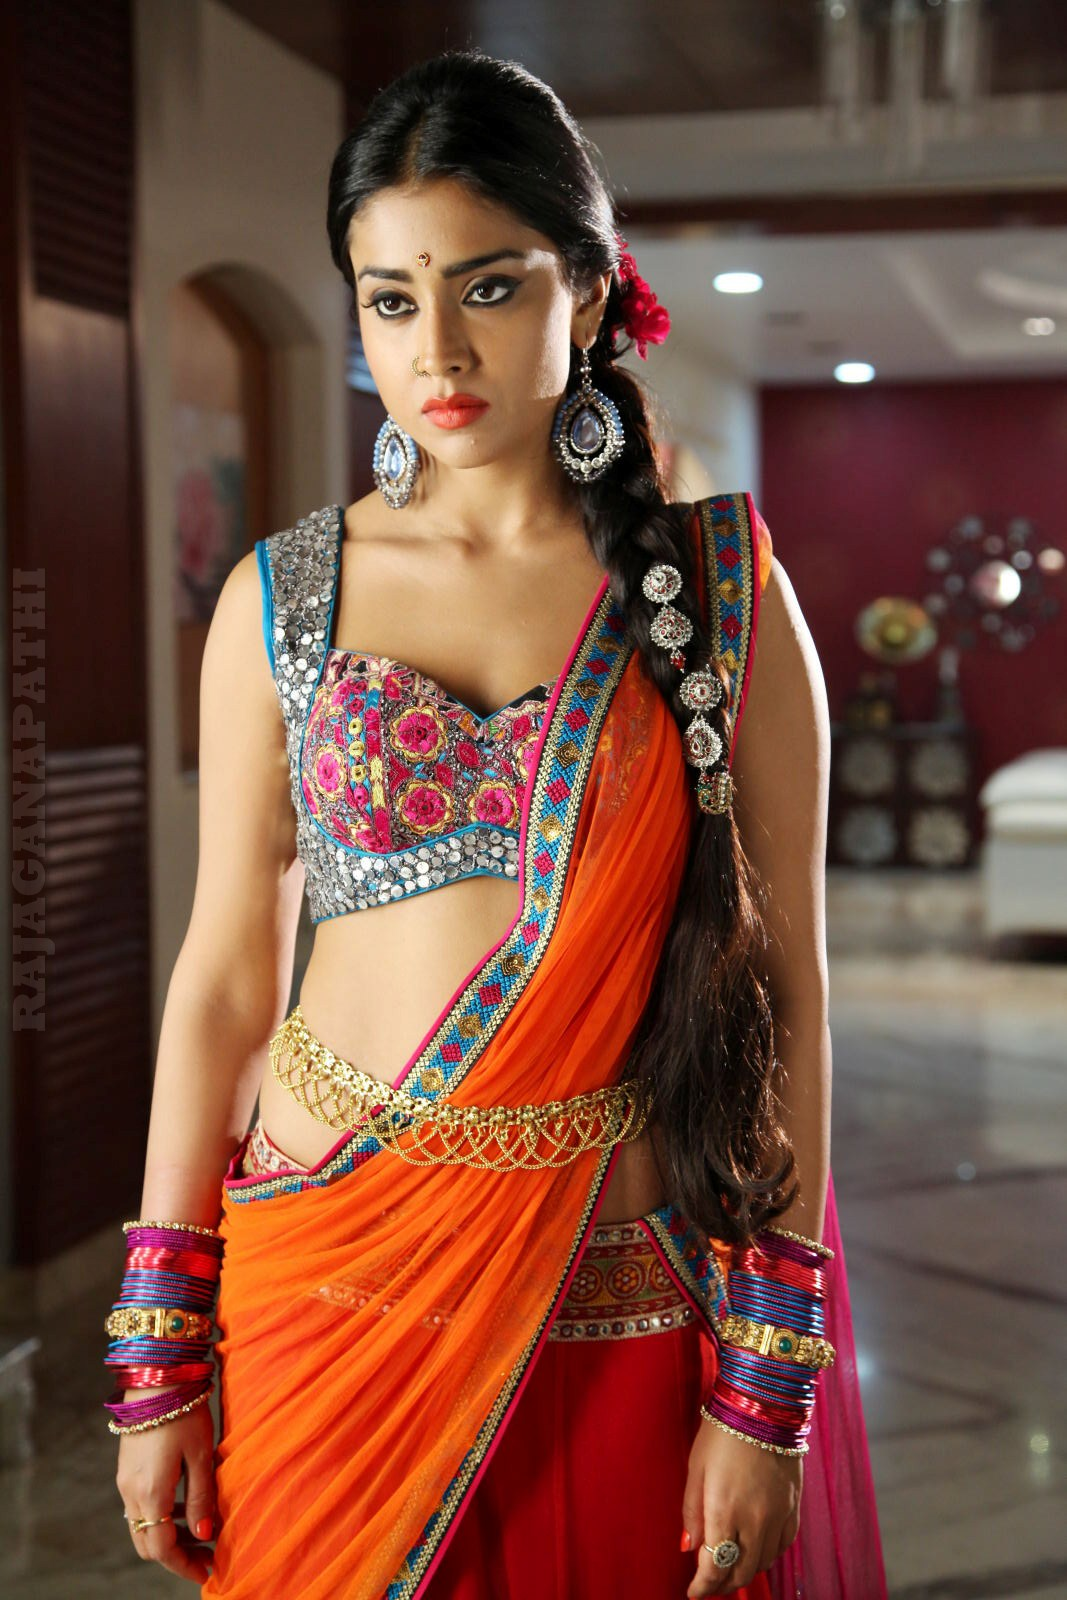 Shriya saran hot your idea